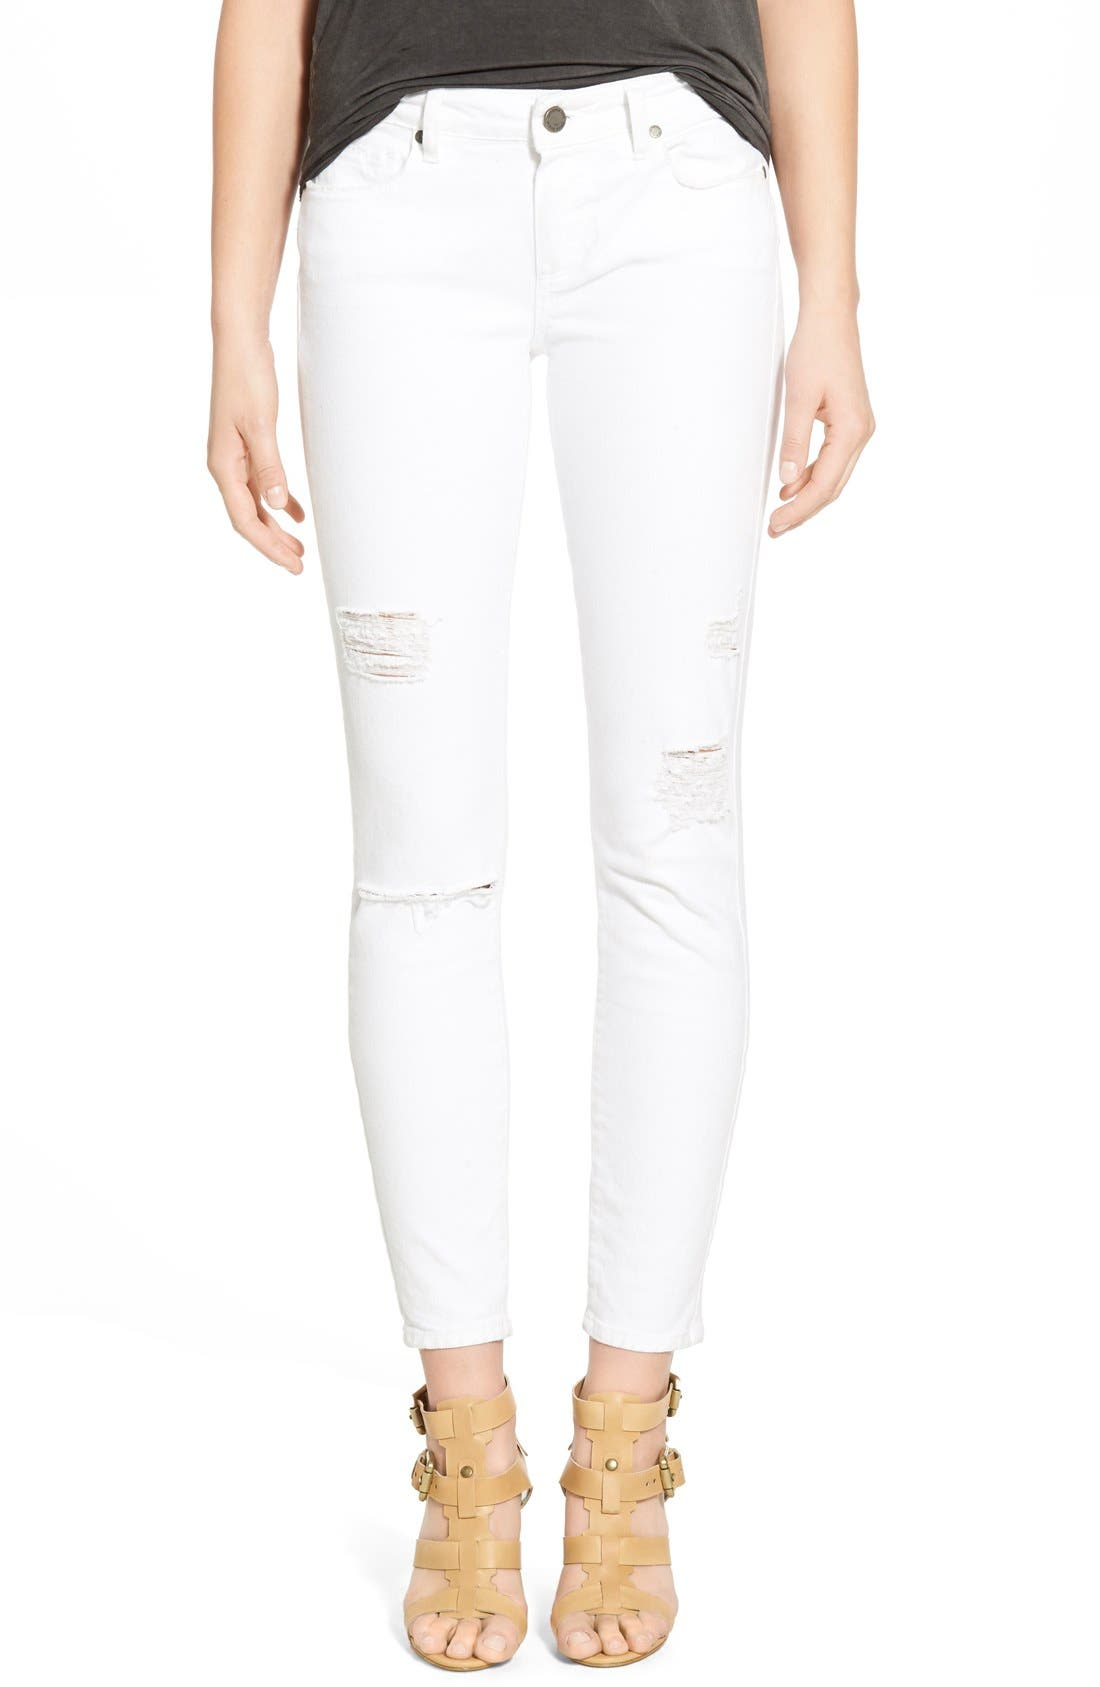 Alternate Image 1 Selected - PAIGE 'Verdugo' Ankle Skinny Jeans (Arctic White Destructed)